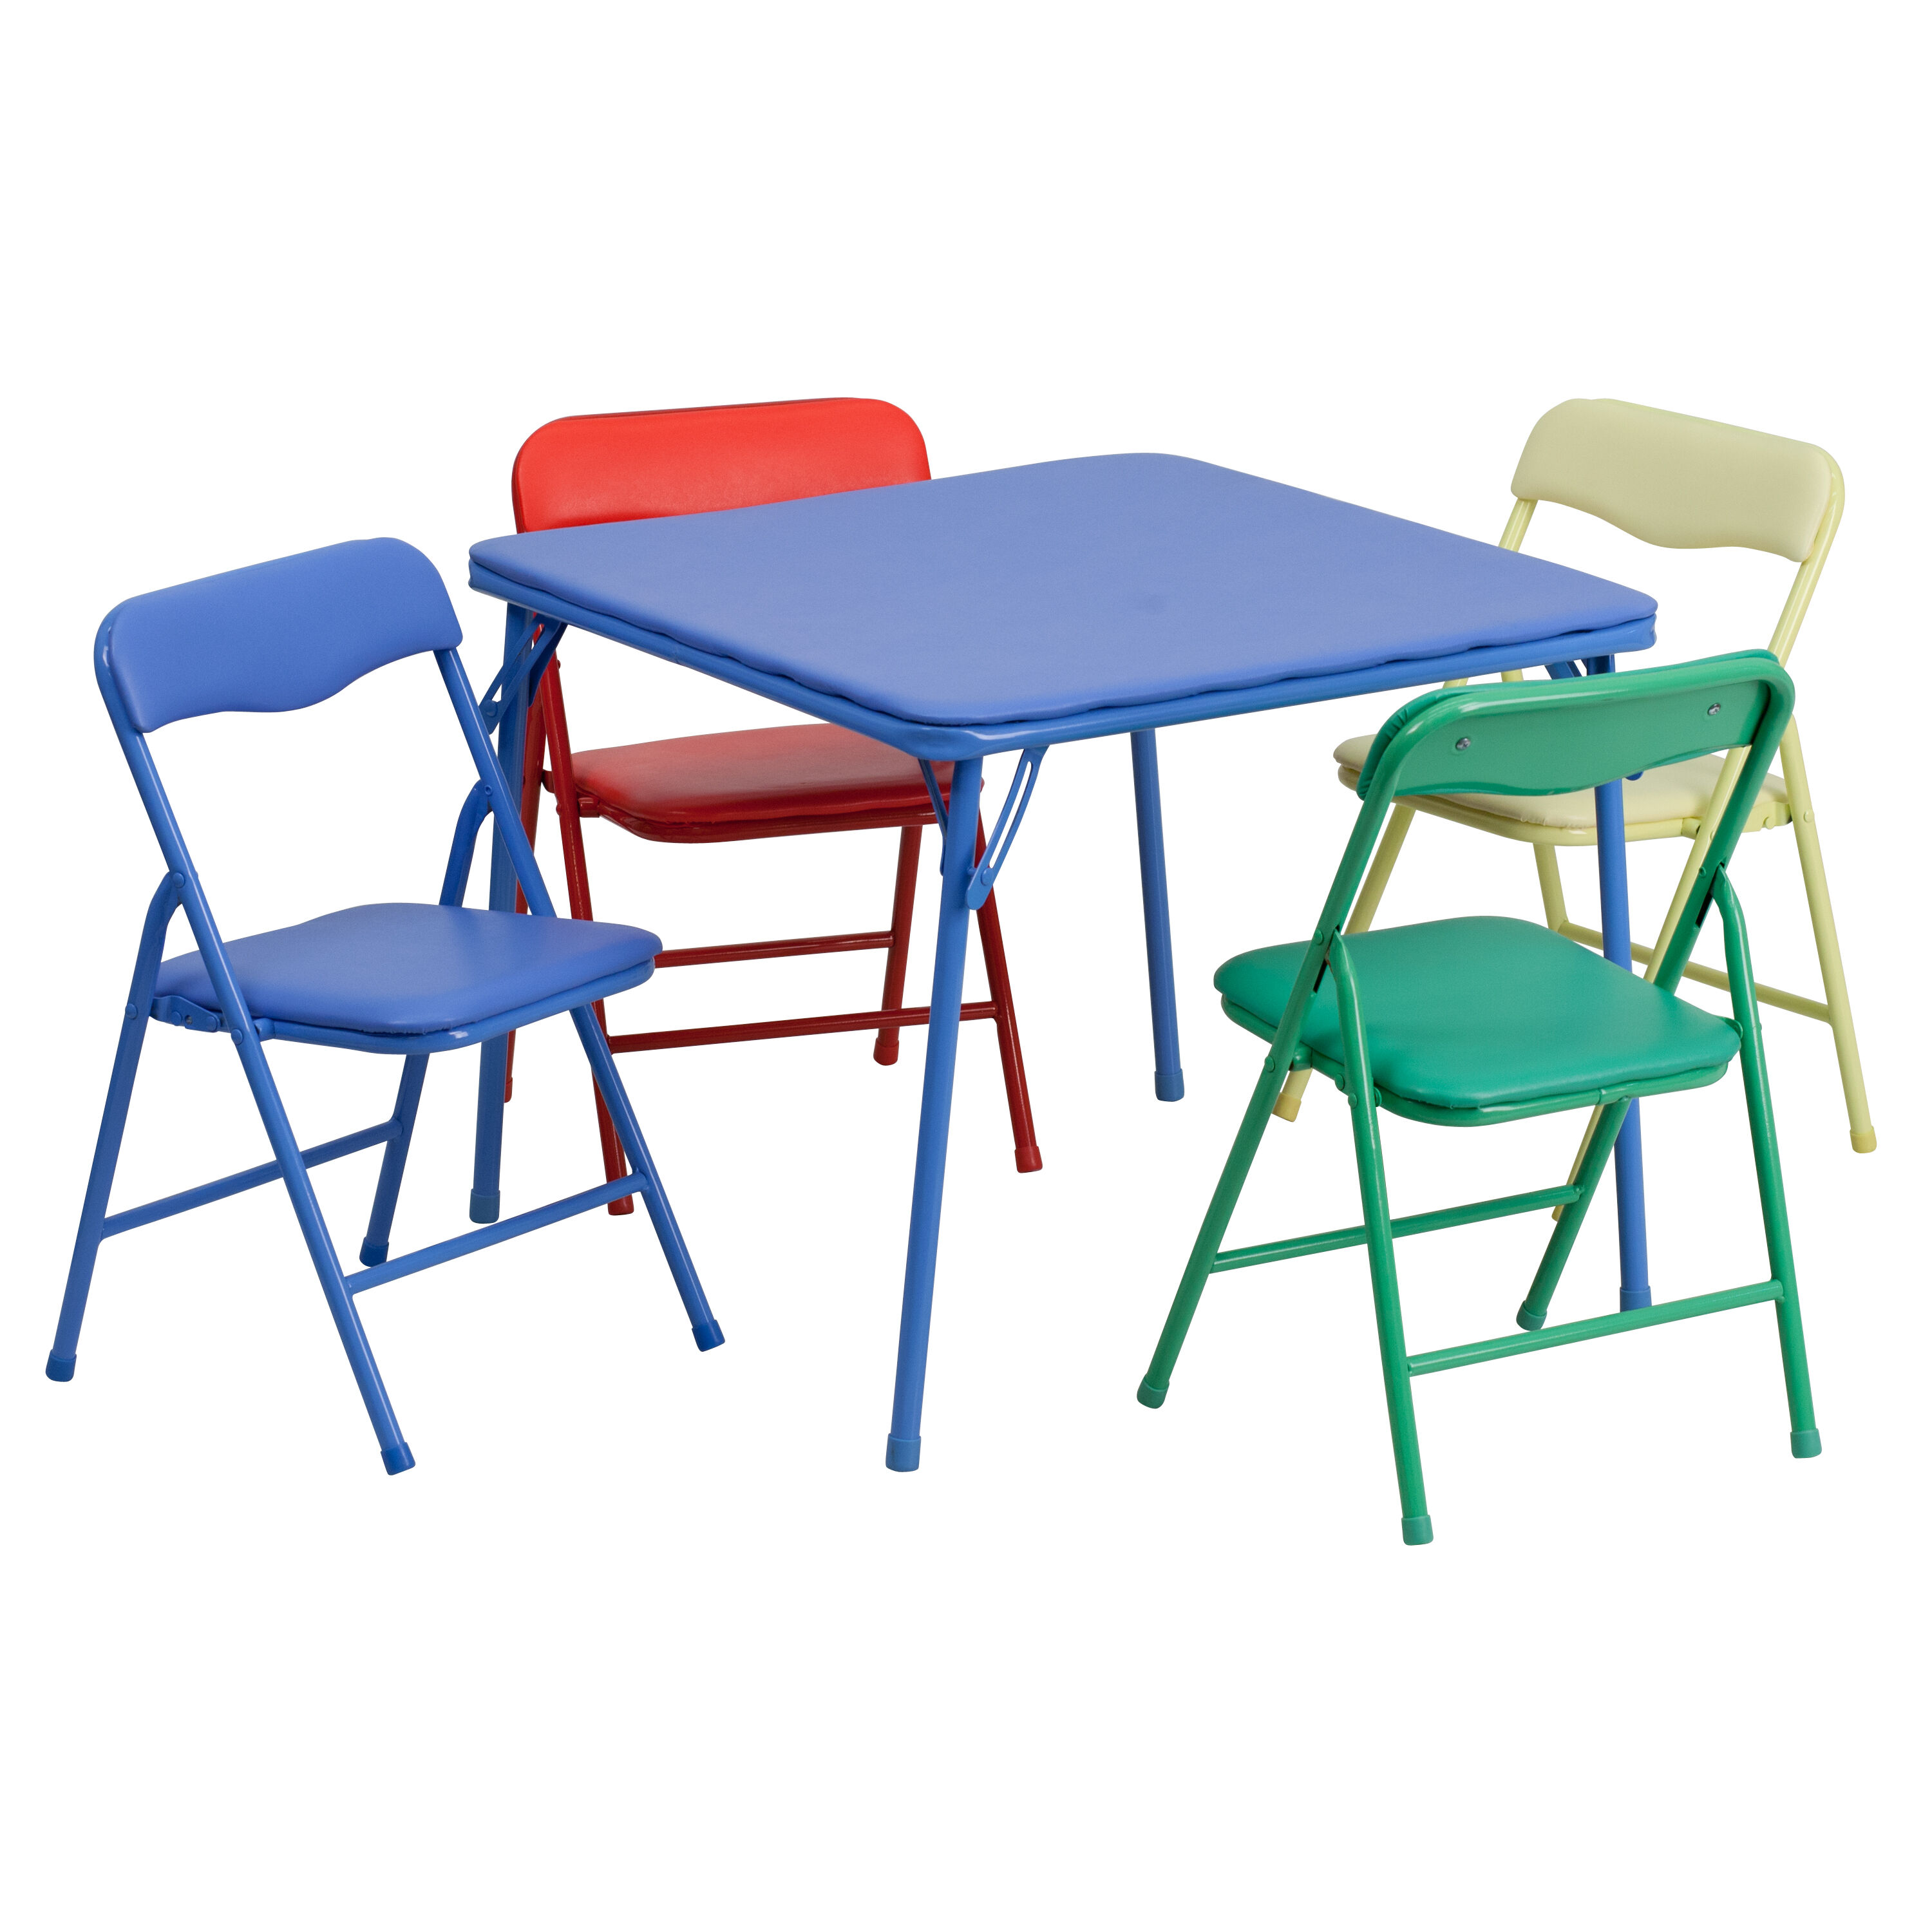 ... Our Kids Colorful 5 Piece Folding Table And Chair Set Is On Sale Now.